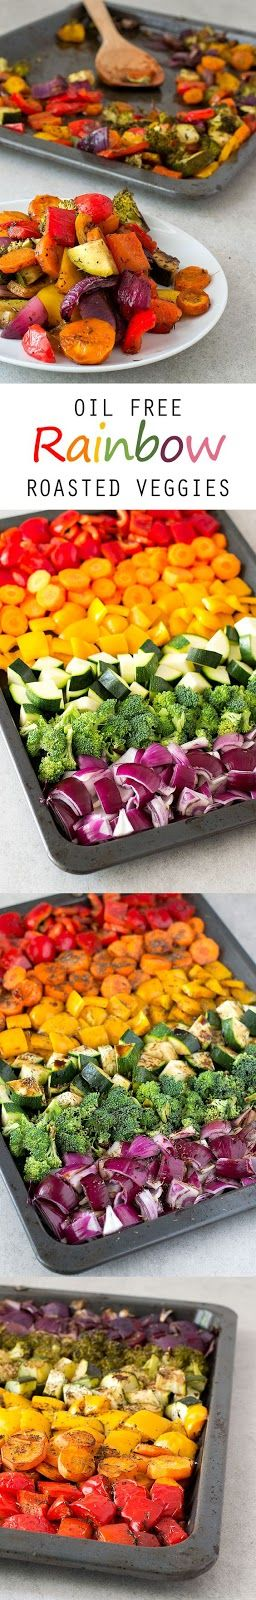 Oil Free Rainbow Roasted Vegetables - Recipes - Cooking Tip Of The Day